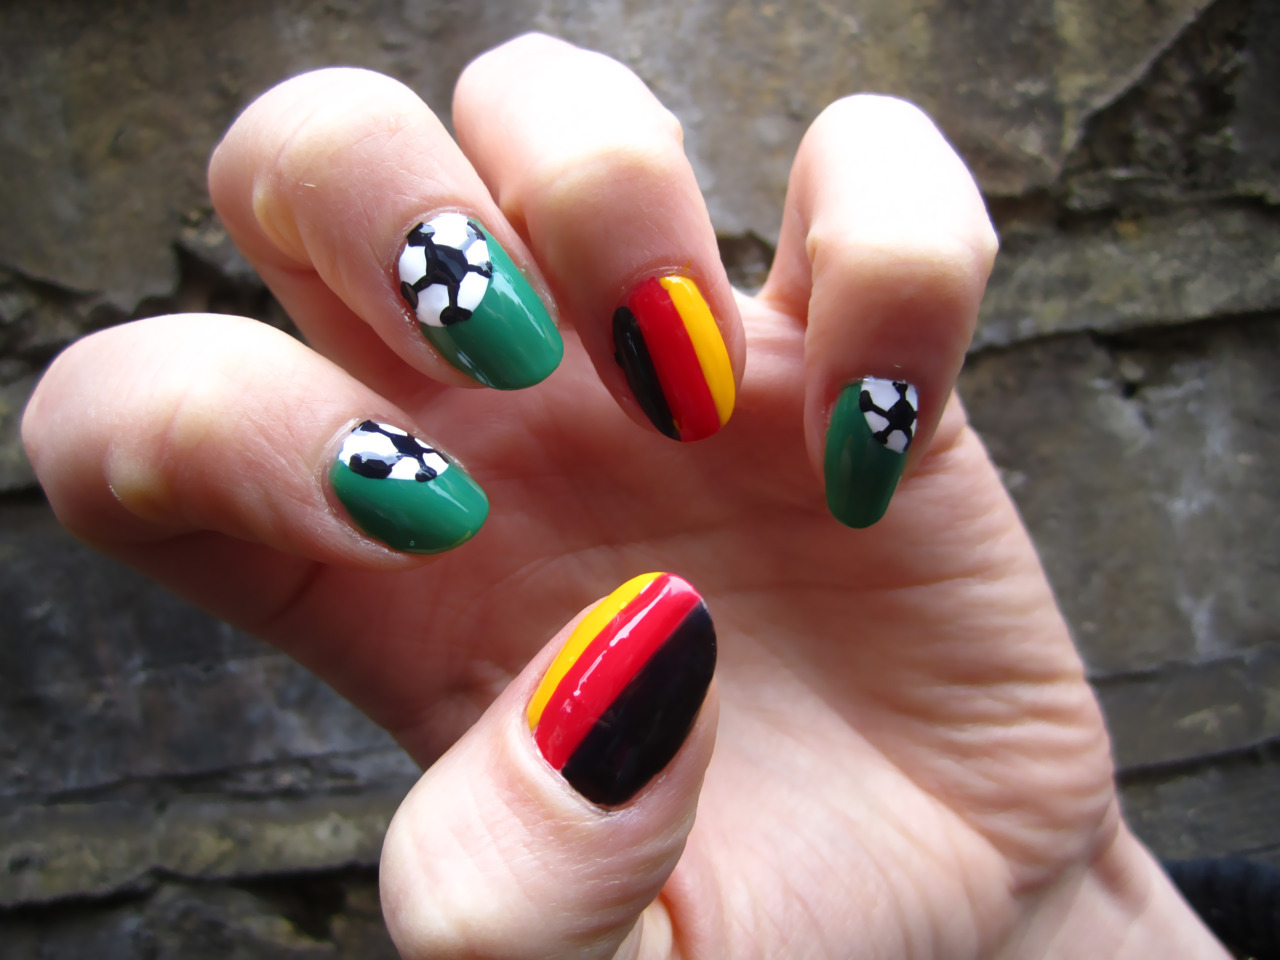 special request for Germany Euro cup 2012 nail art by DaaaangGirl